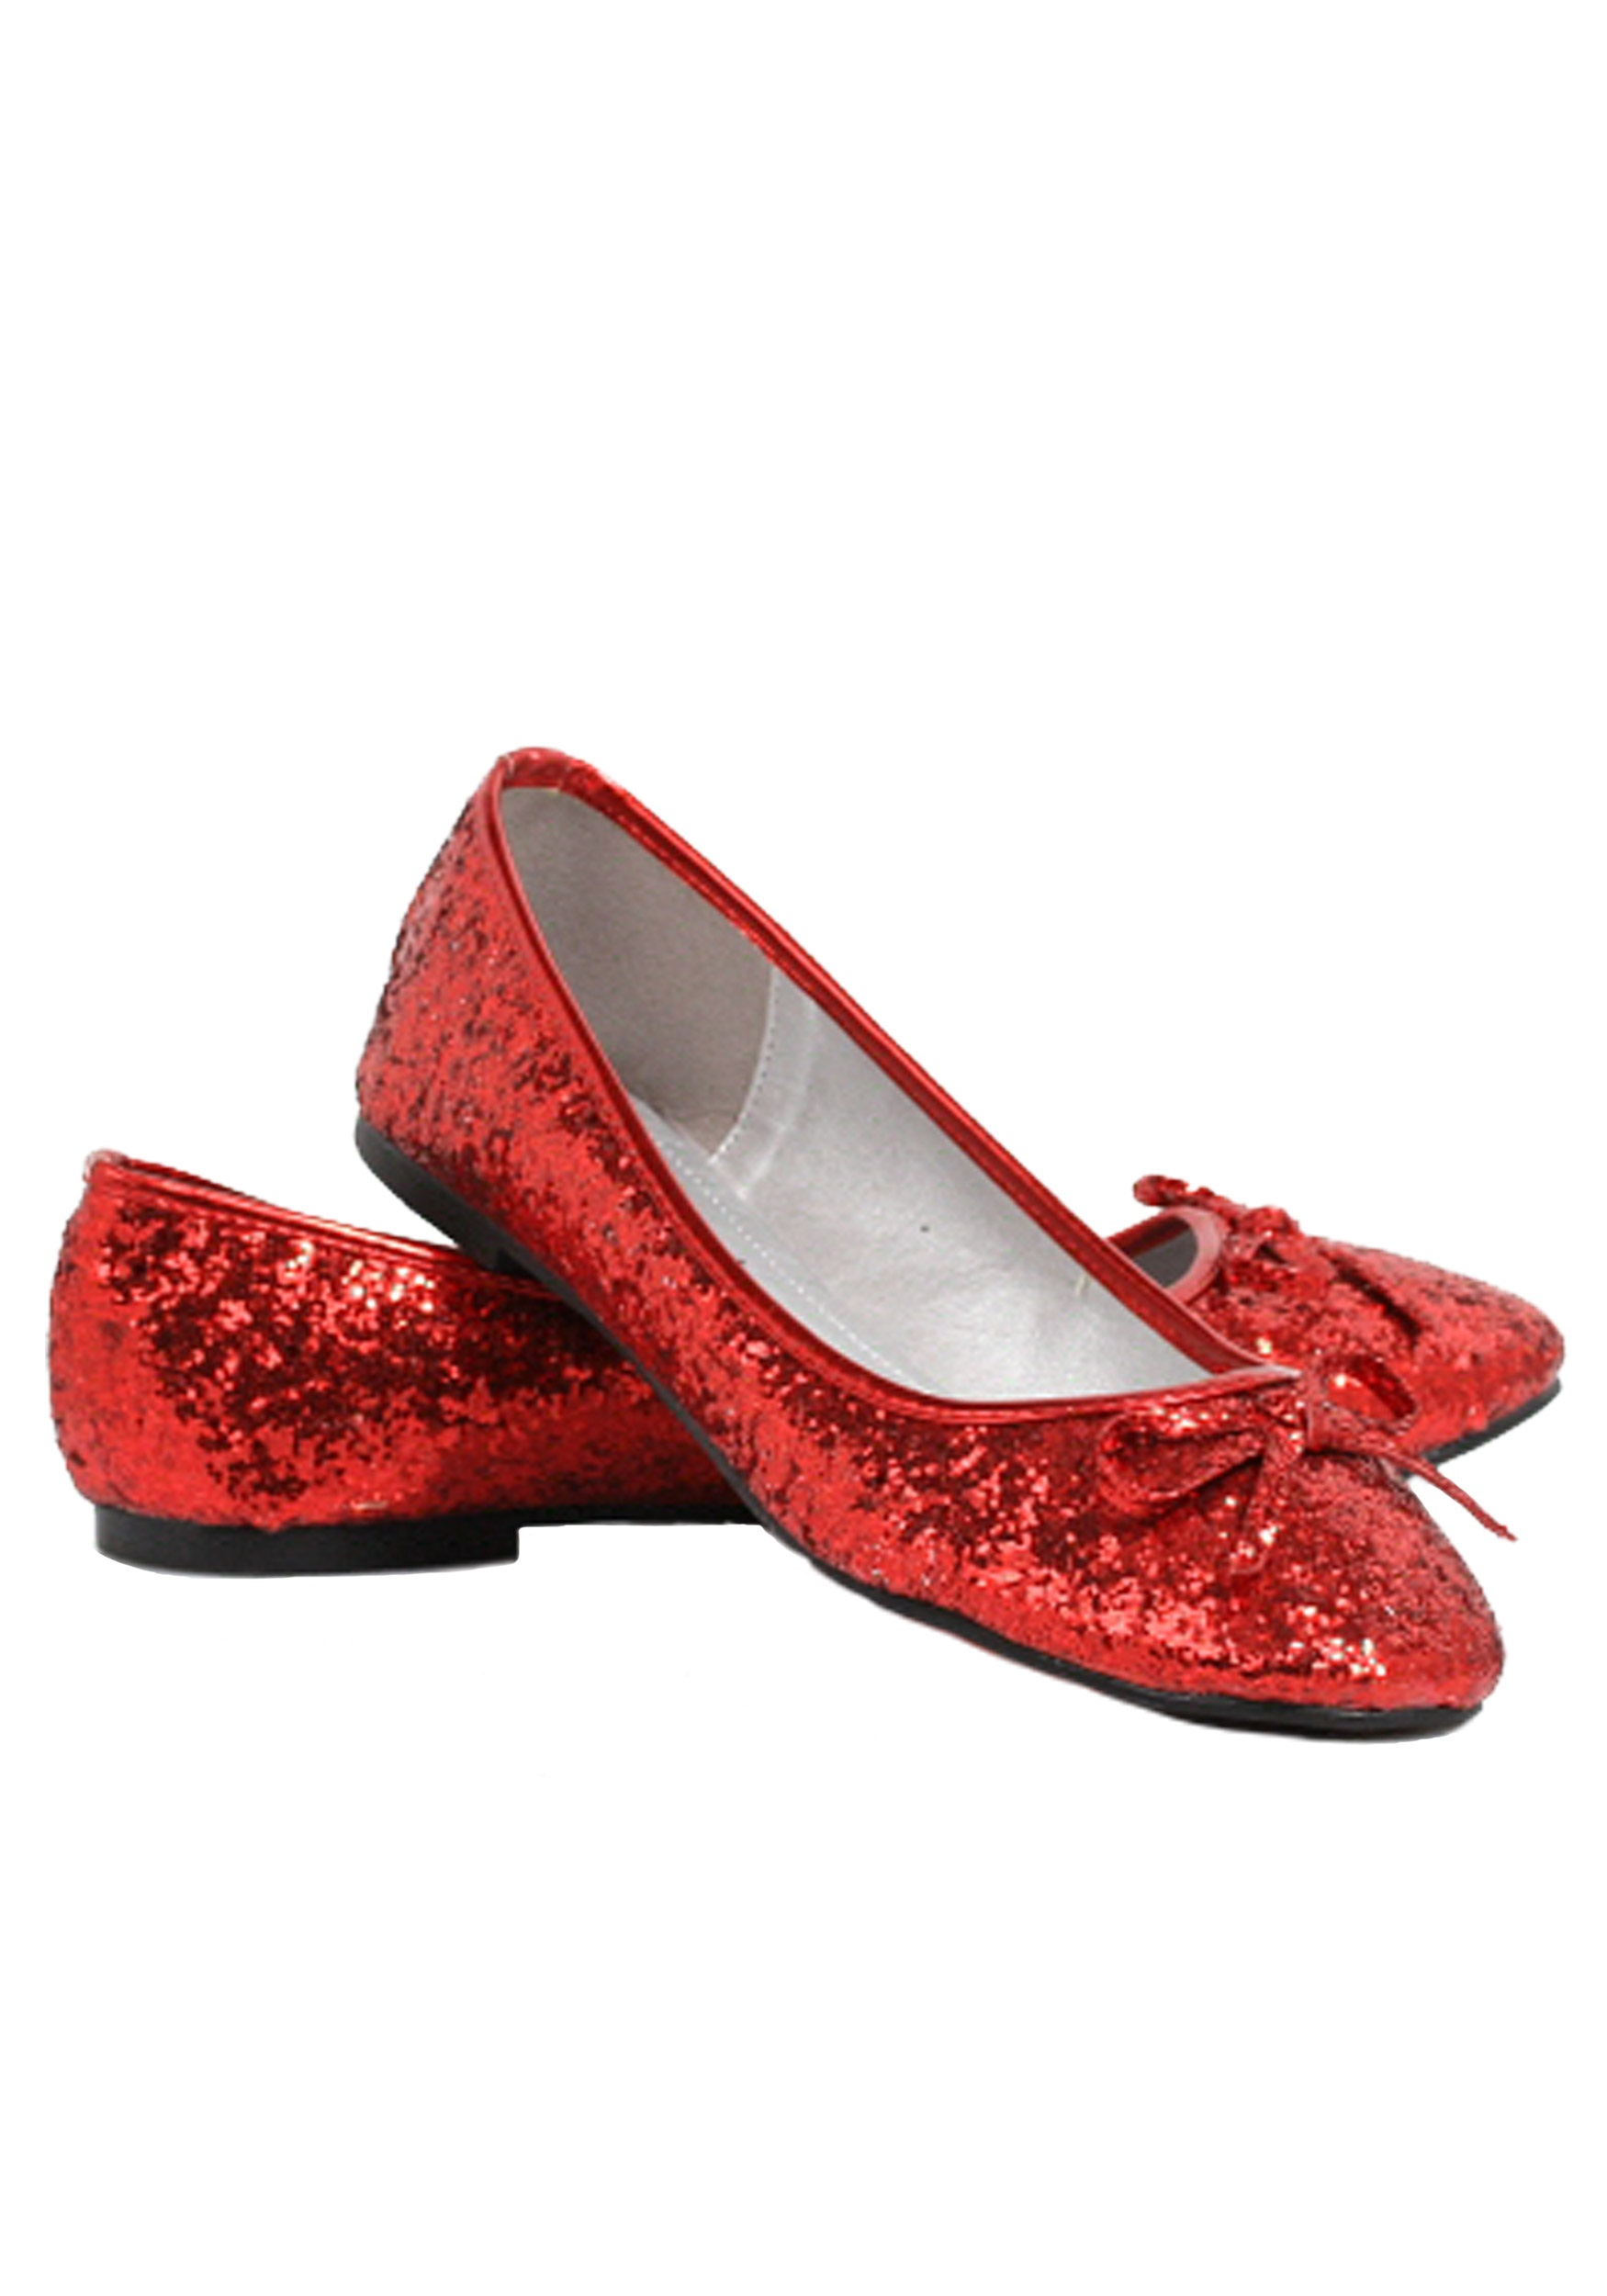 Women's Red Glitter Flats   Red Sparkly Shoes   Women's Shoes